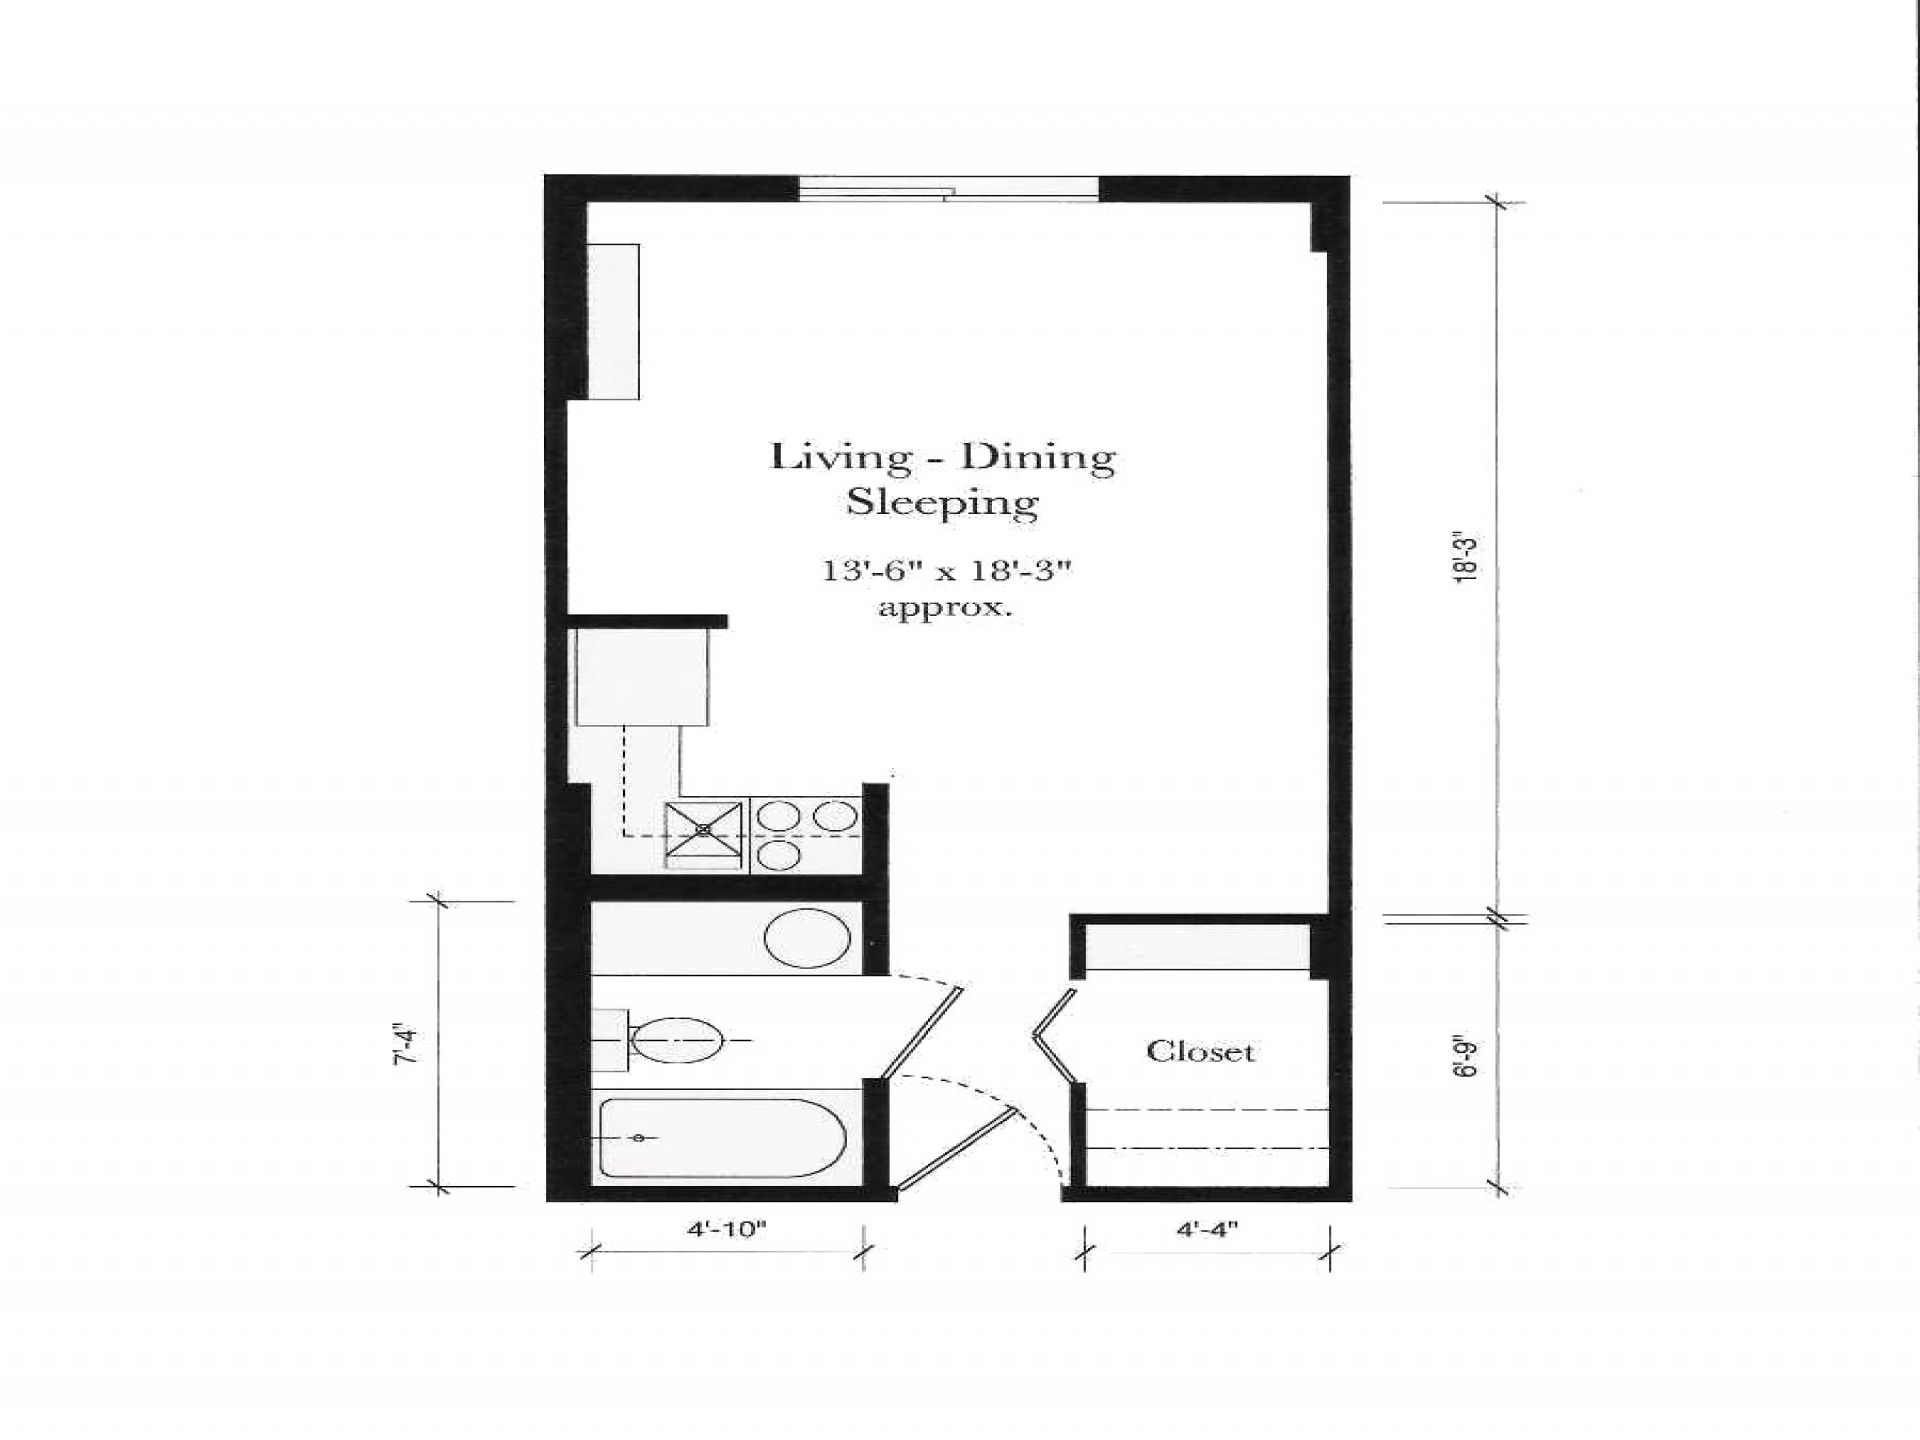 Apartment Studio Floor Plan Simple Floor Design Studio Apartment Floor S  350 Sq Ft